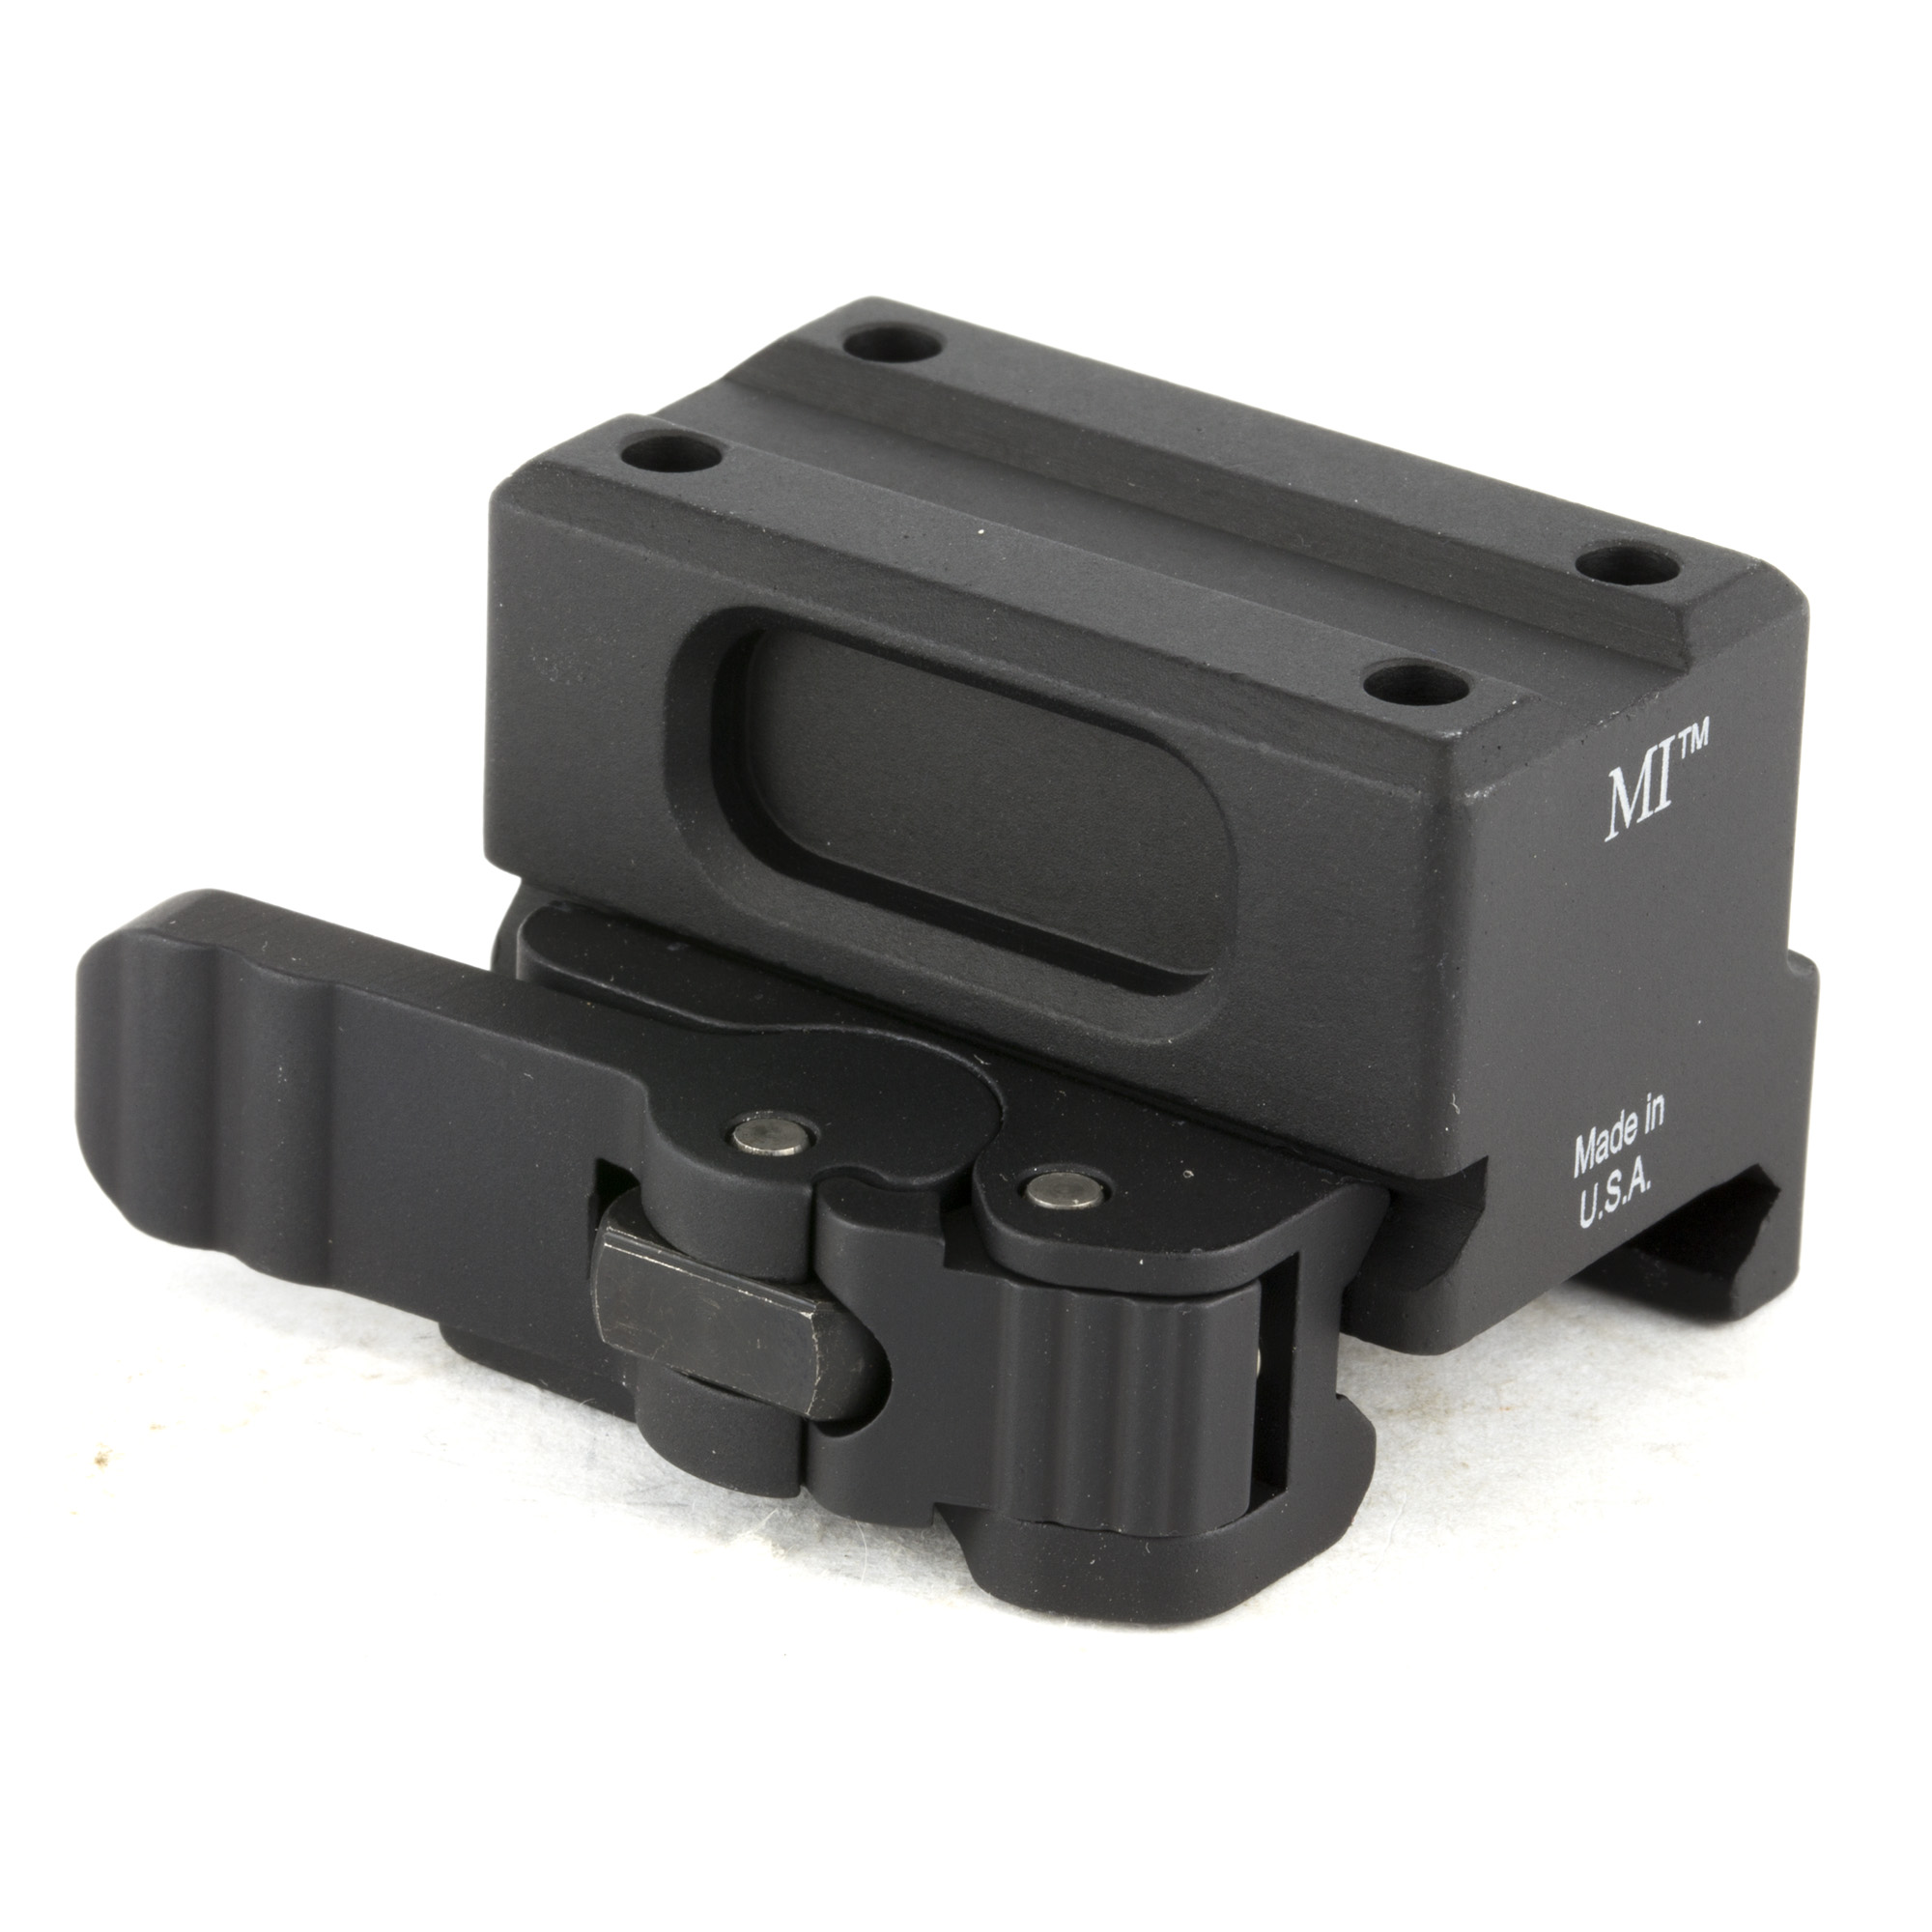 Lower 1/3 Trijicon MRO QD mount made by Midwest Industries.